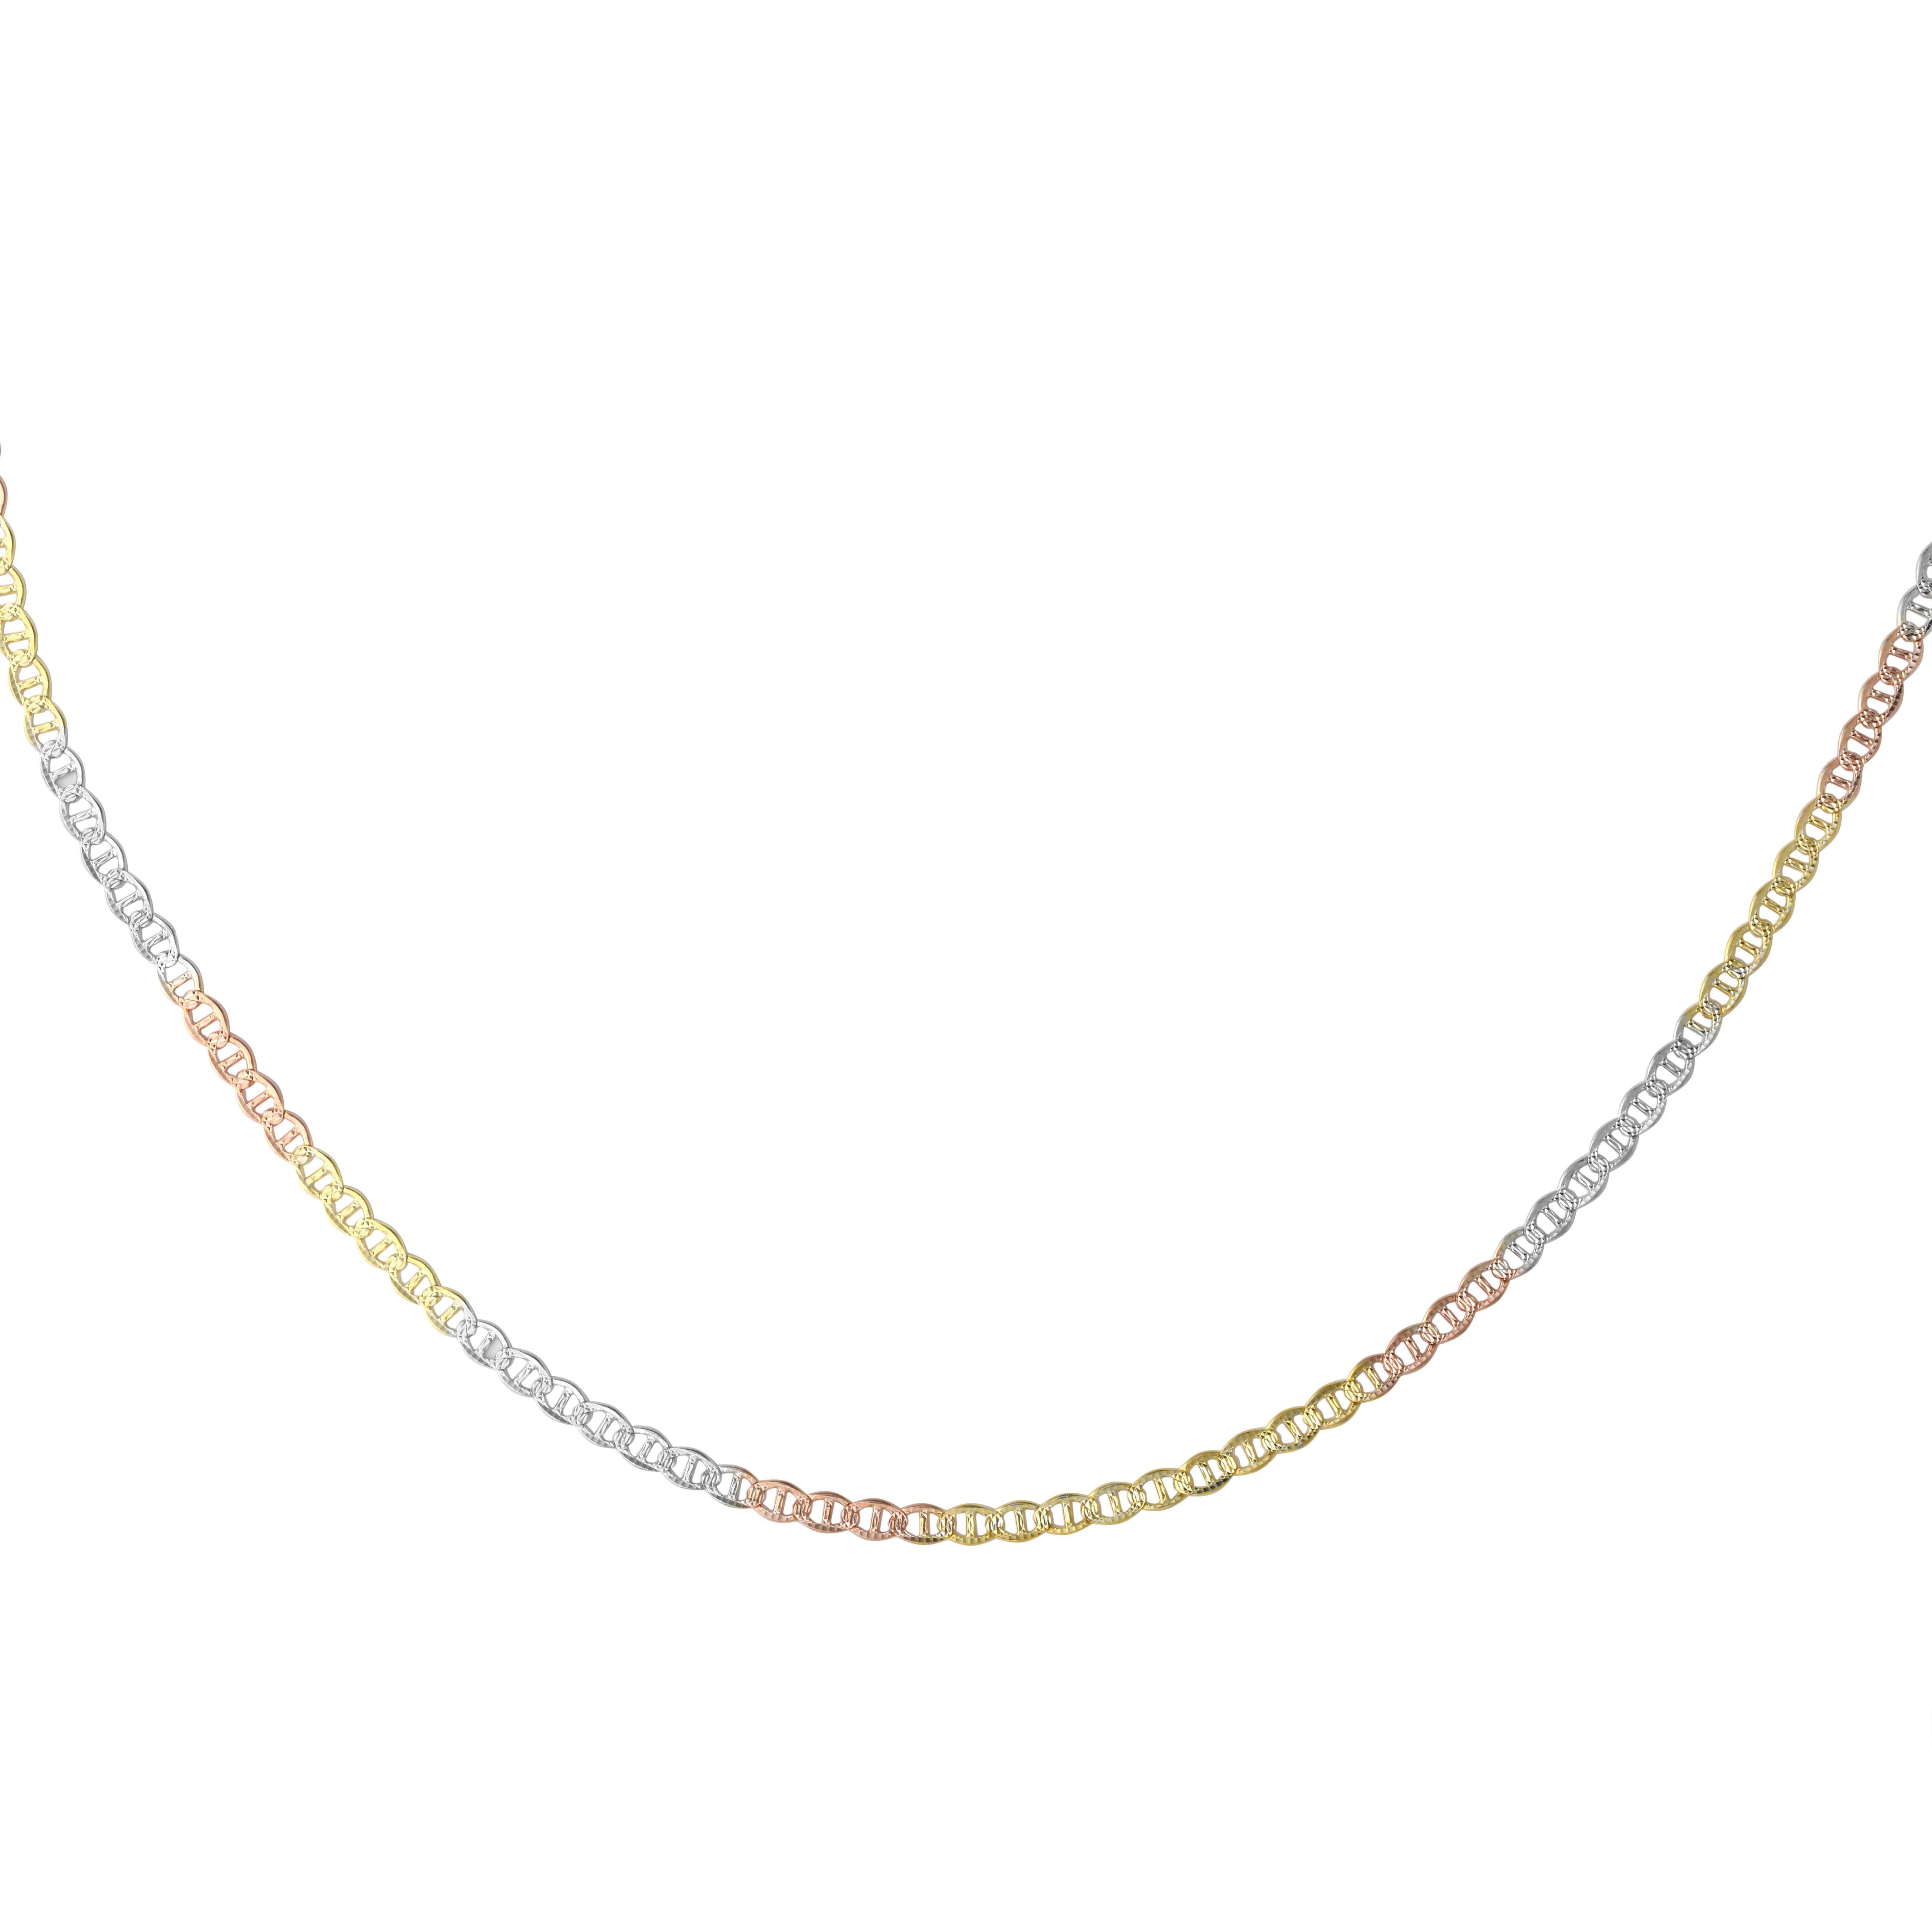 18'' Links style chain - 10K 3-tone Gold